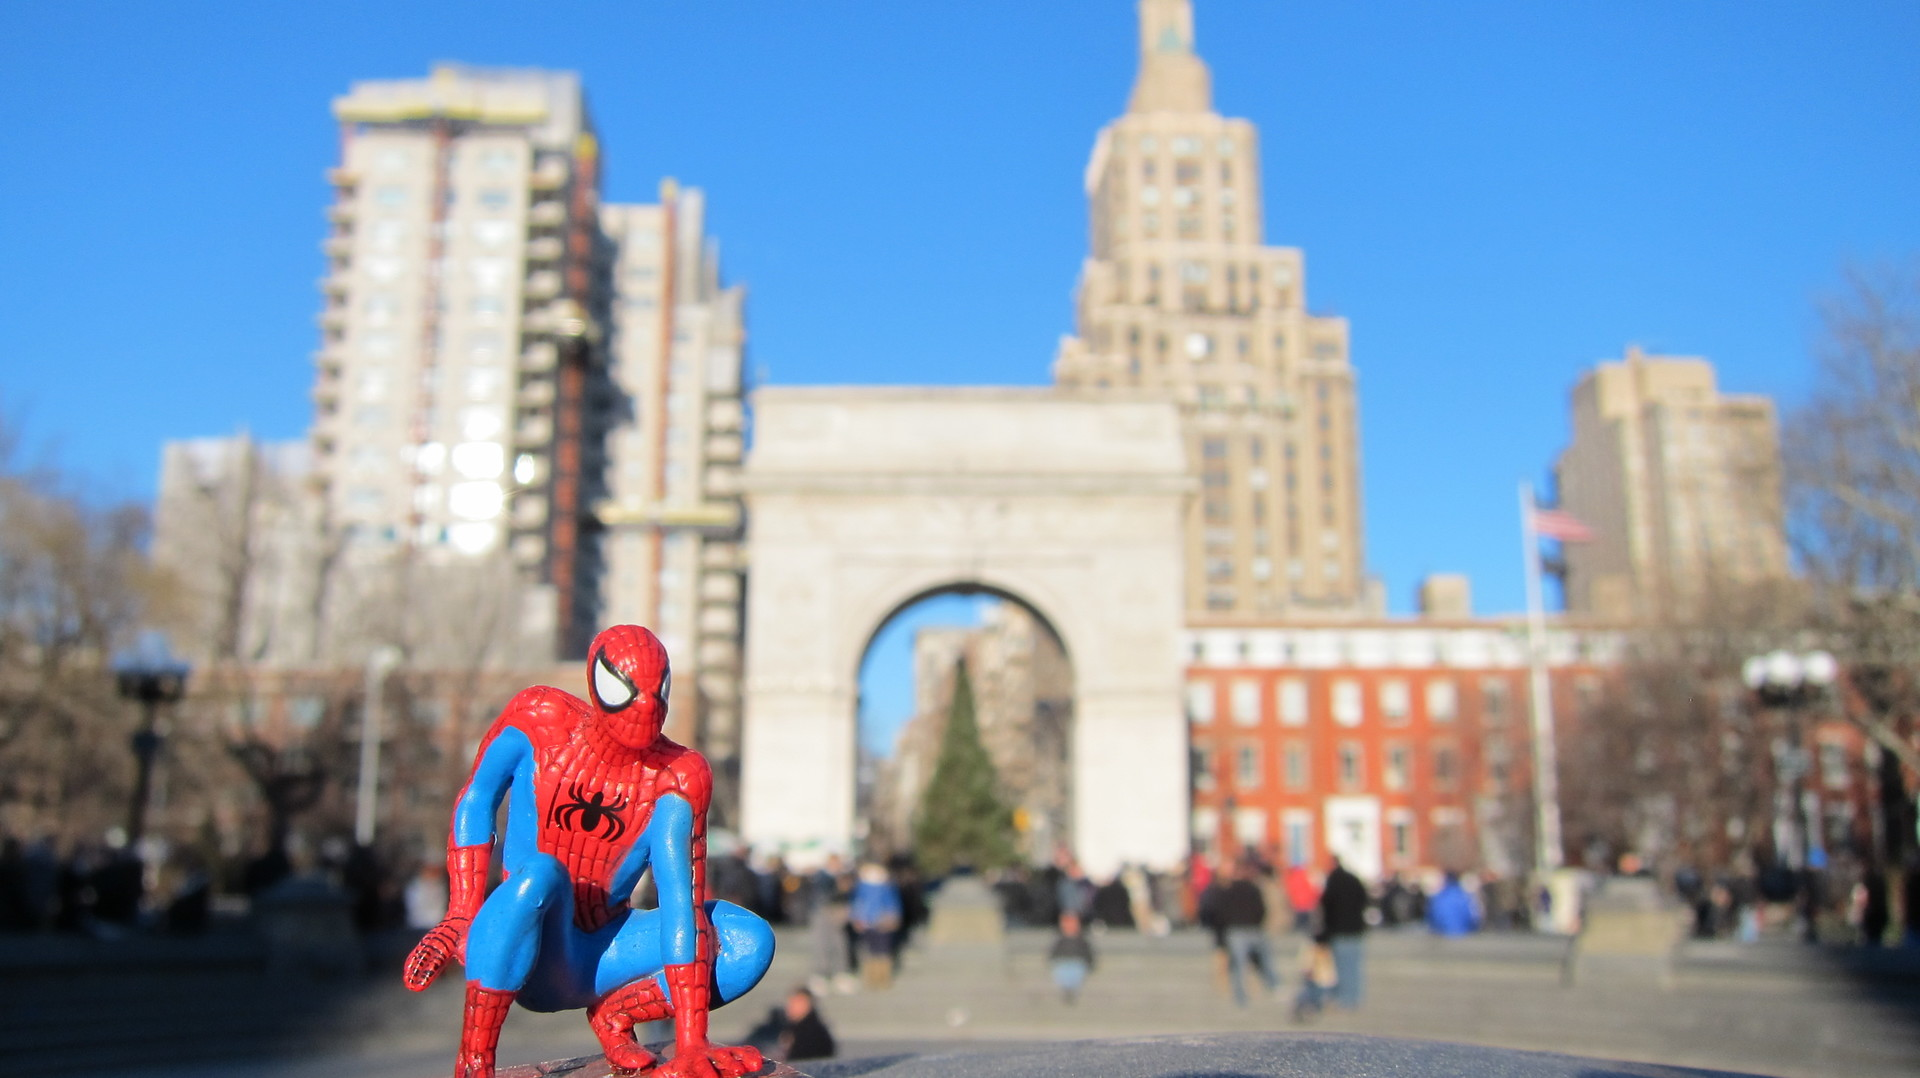 Spider-man sighting in NYC | popluv13, architecture, building, city